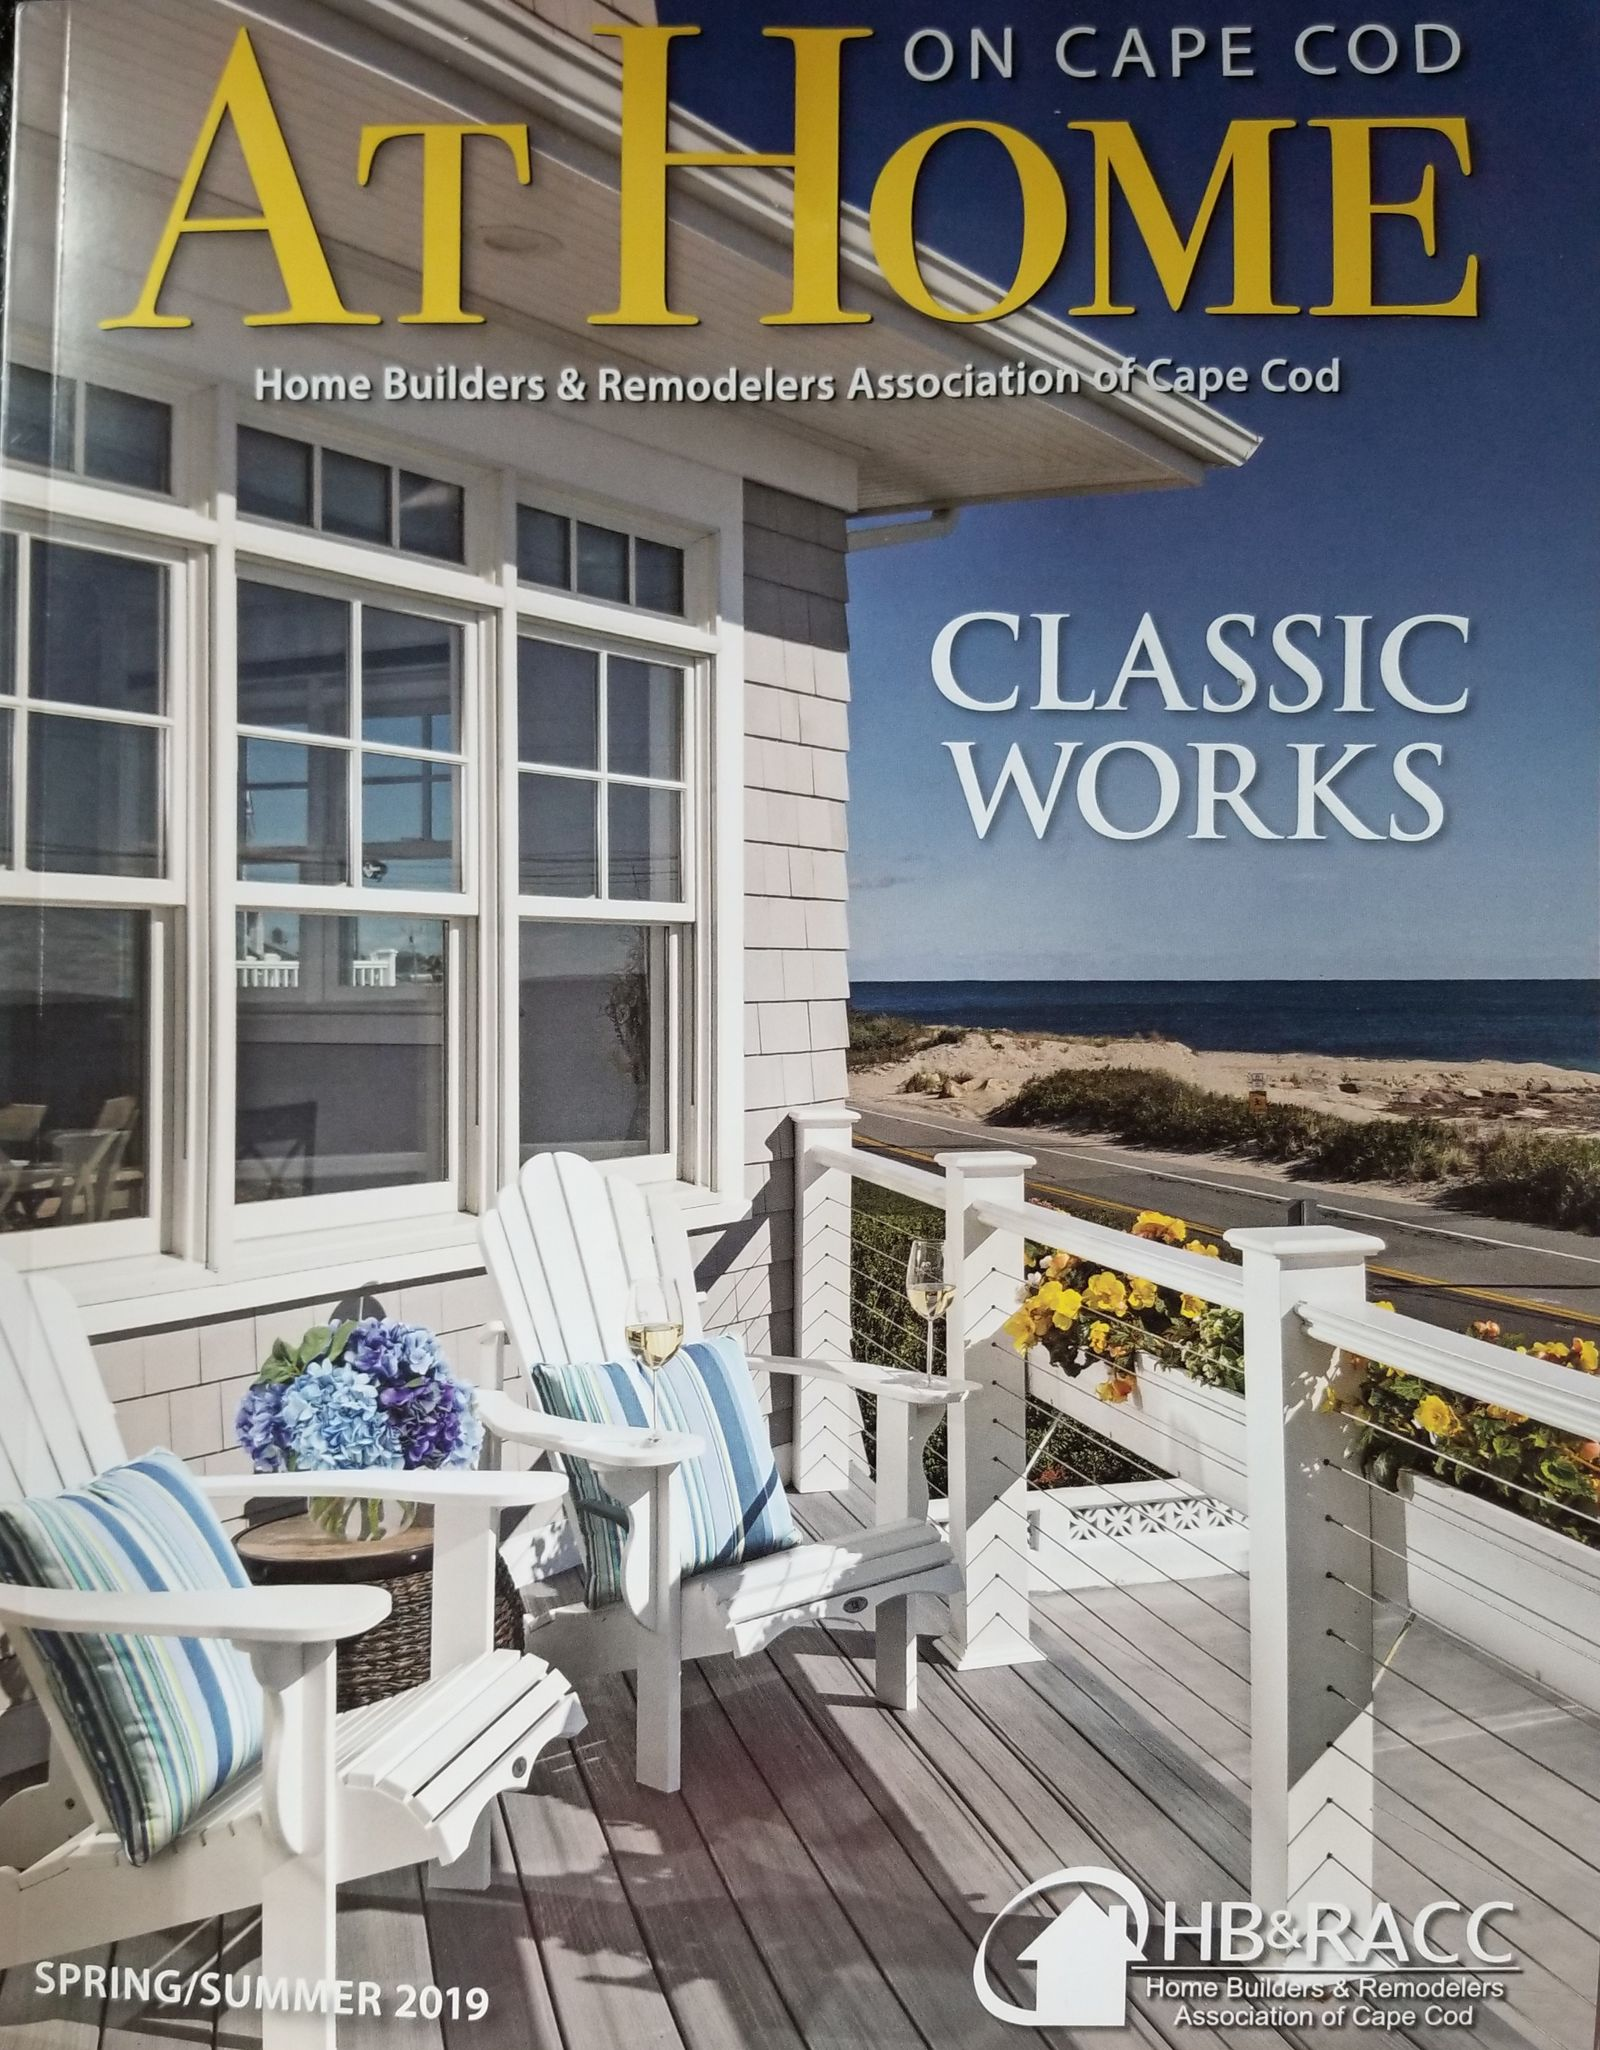 At Home cape cod cover spring summer 2019.jpg